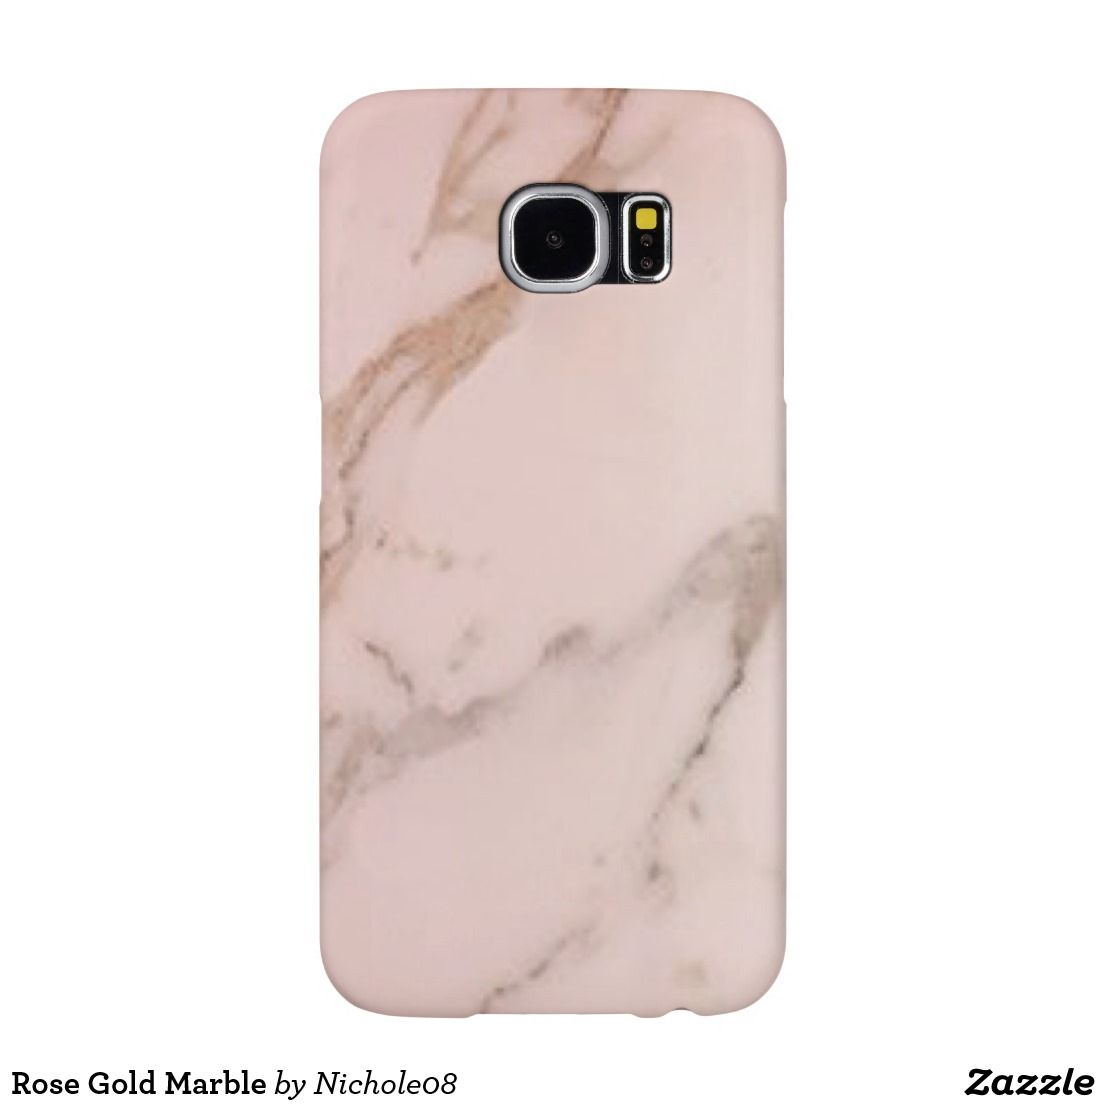 Rose Gold Marble Case Mate Samsung Galaxy Case Zazzle Com In 2020 Phone Cases Samsung Galaxy Galaxy S6 Phone Cases Rose Gold Marble